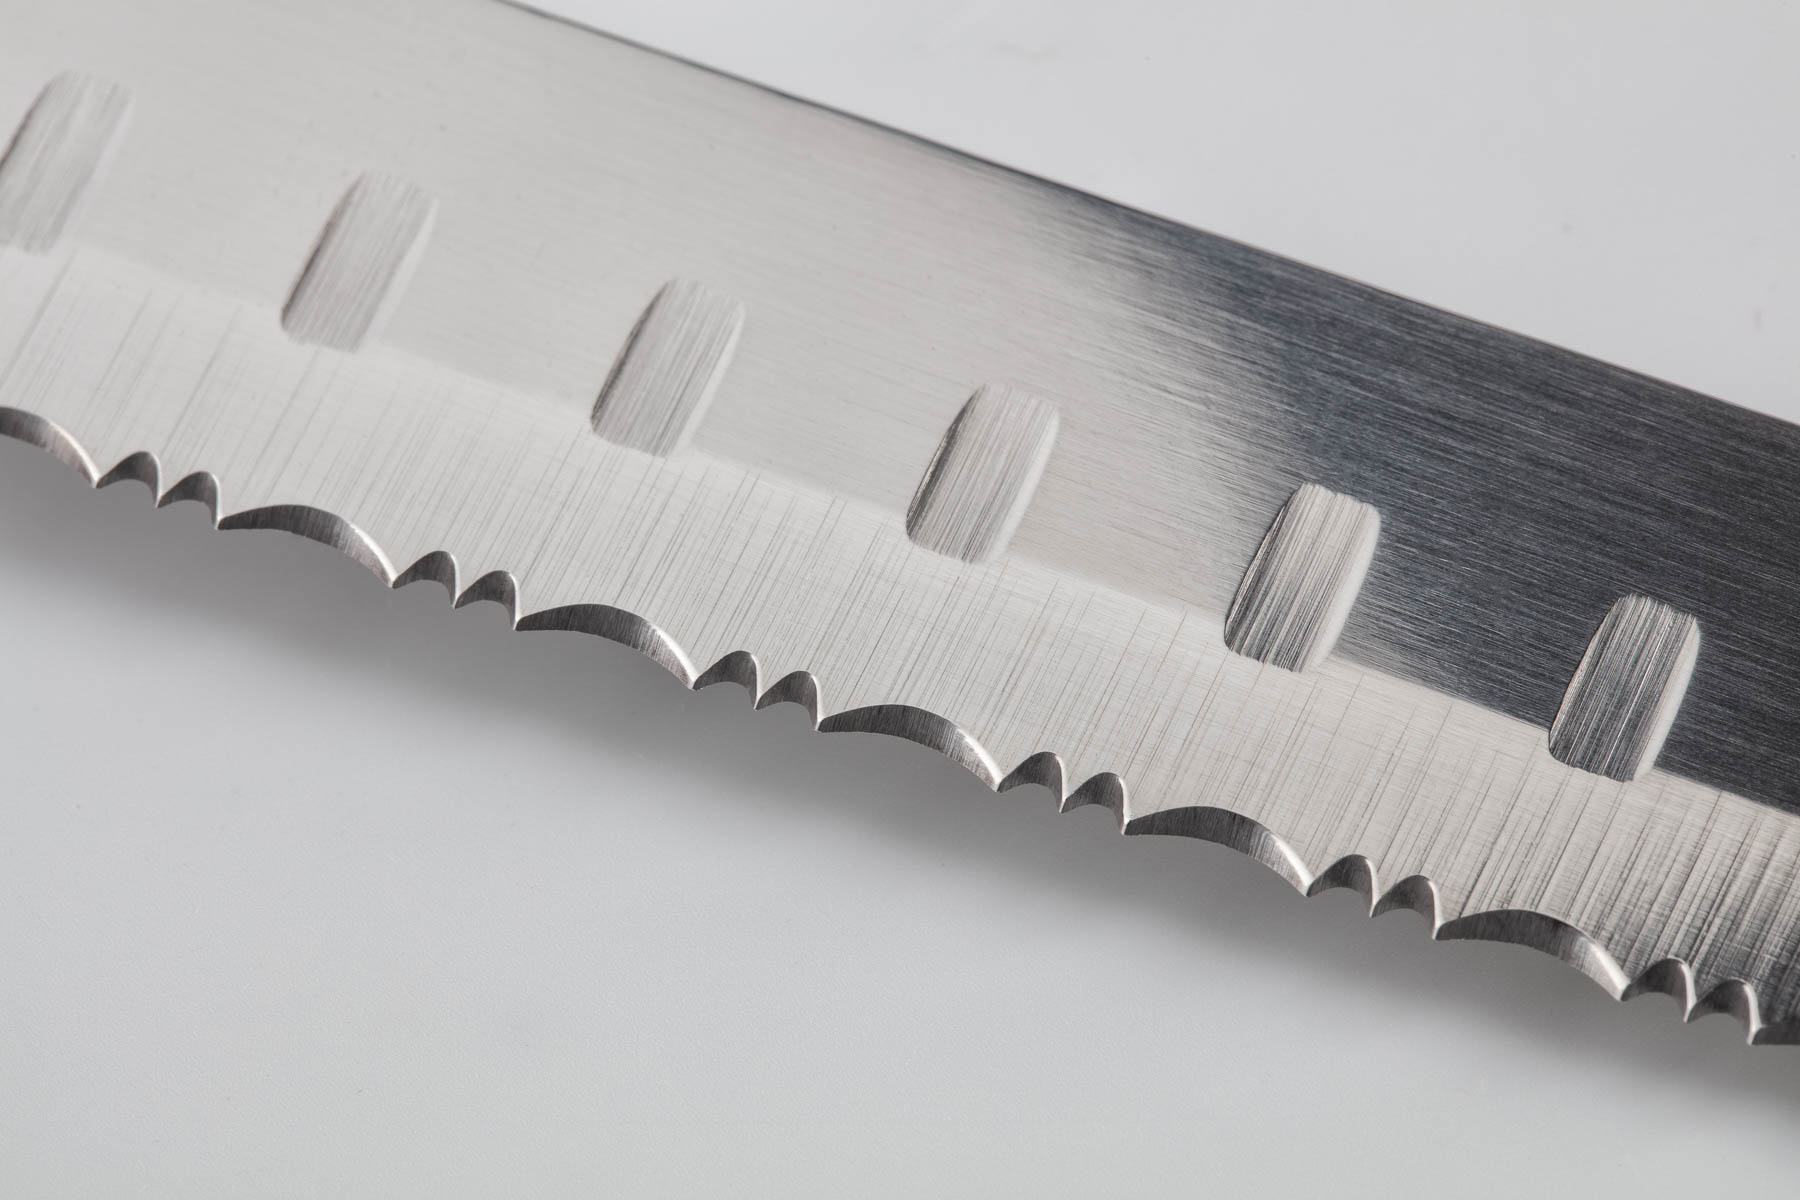 Longer Knife Blade Closeup View - Sample of closeup product photography